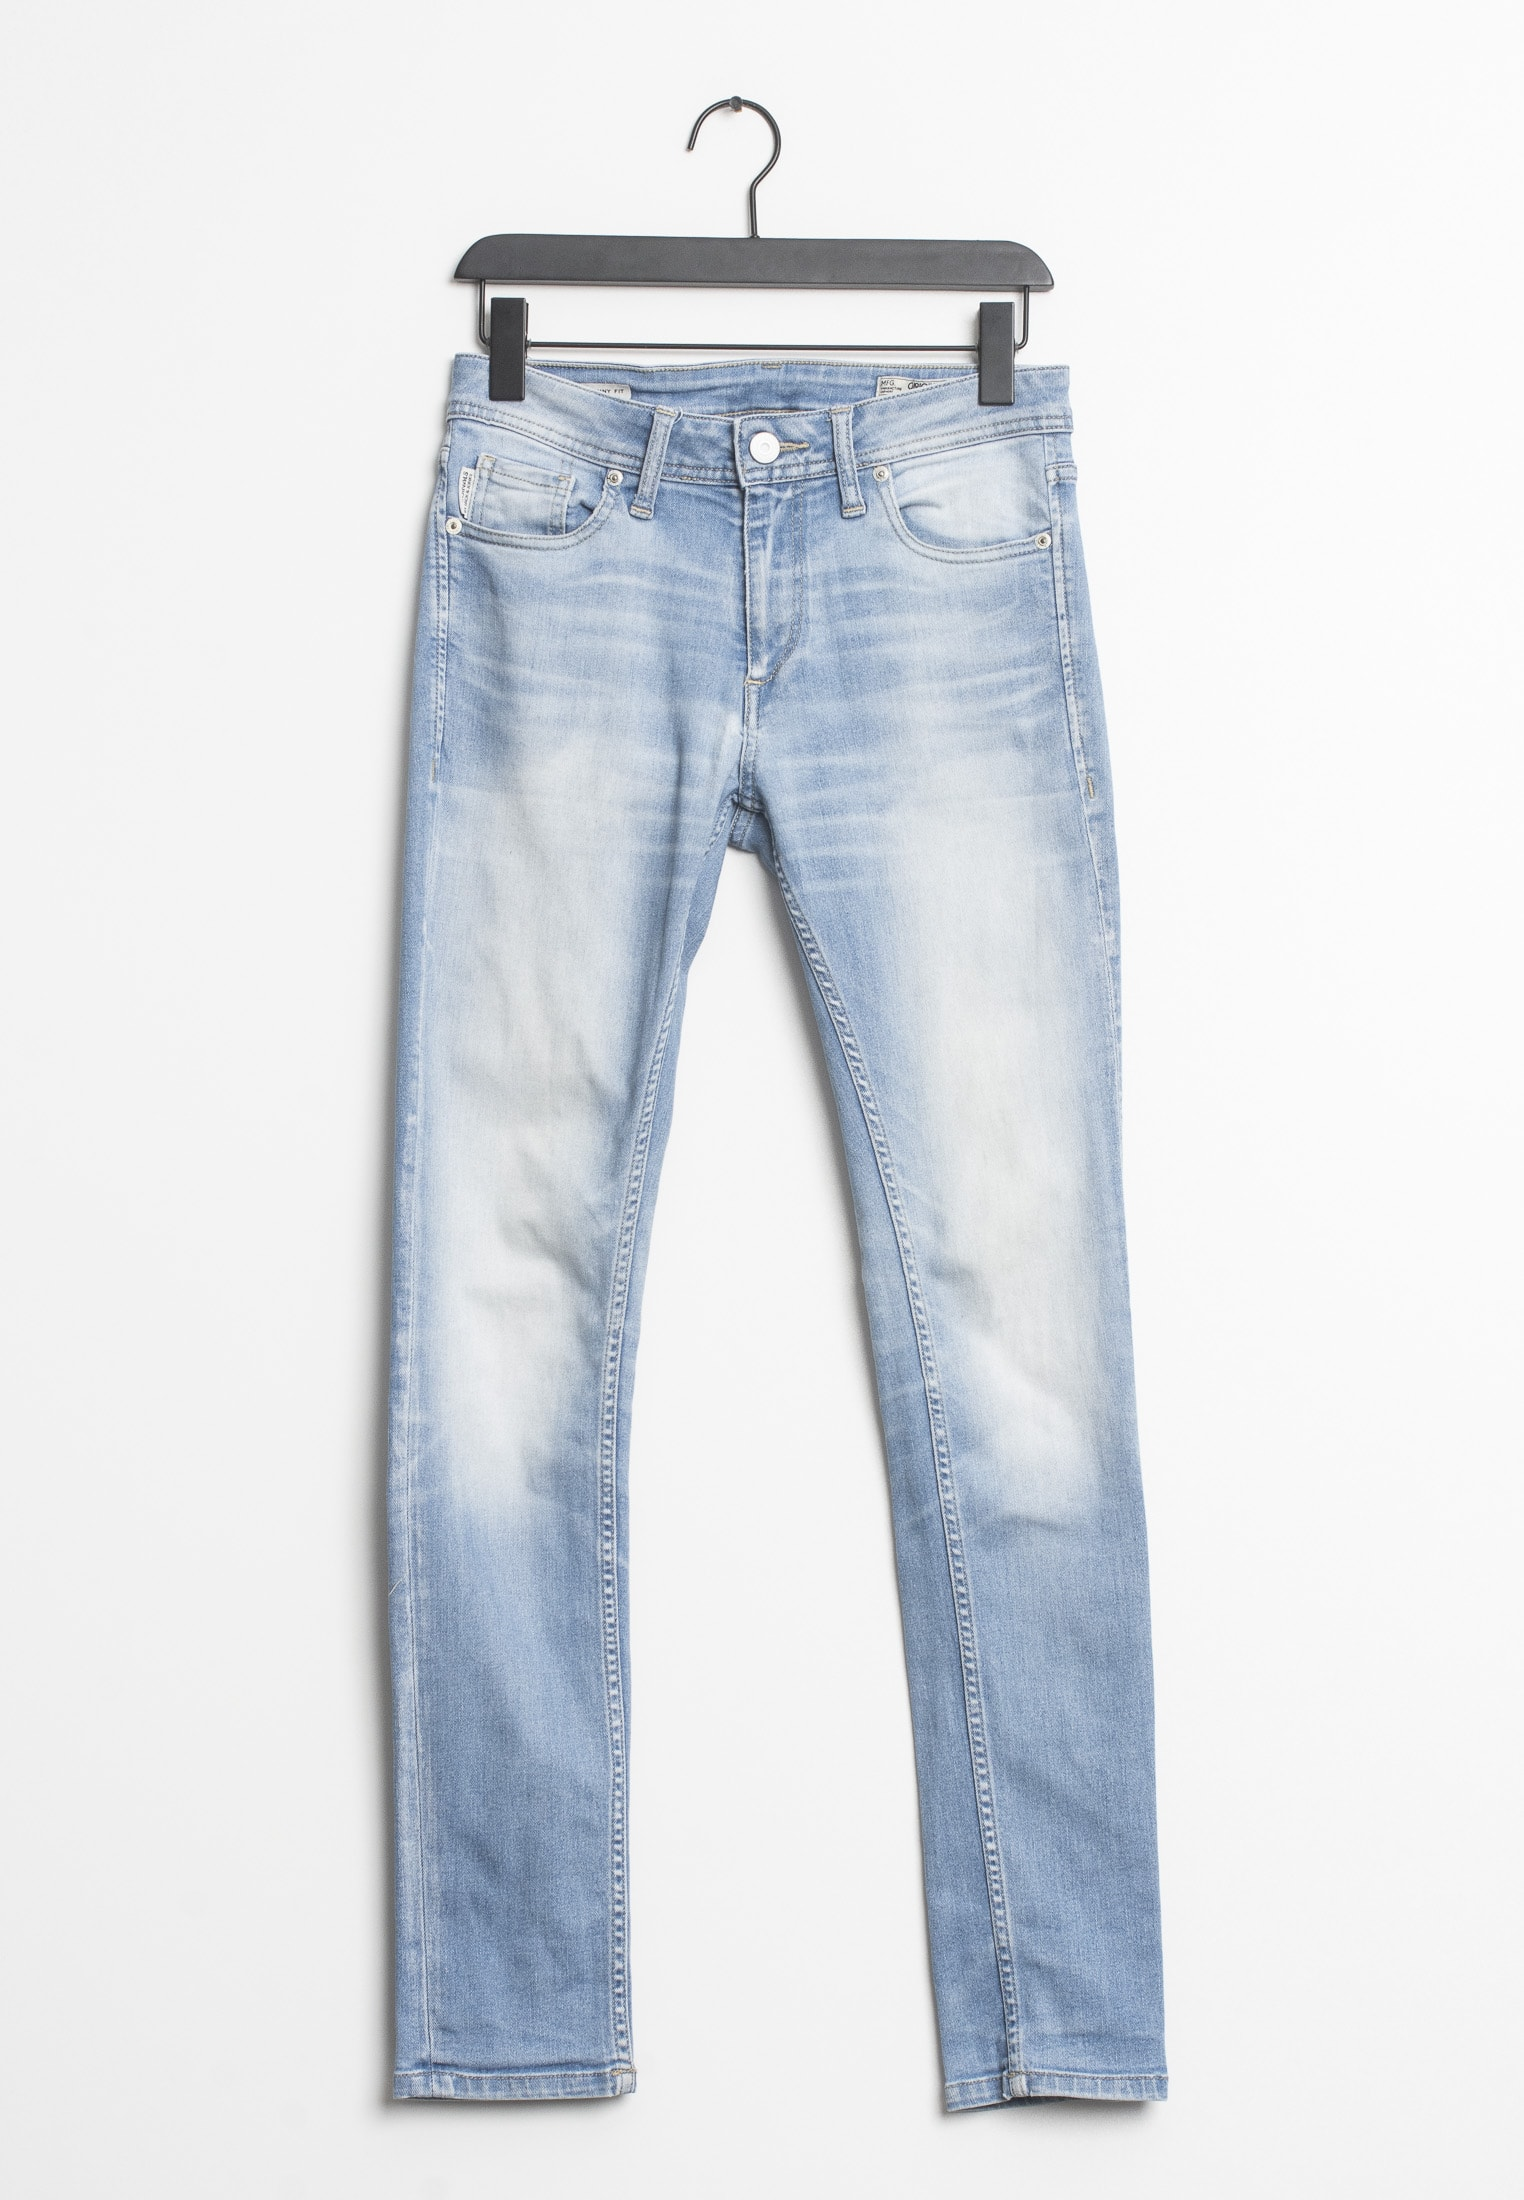 Royal Denim Division by Jack & Jones jeans, blå, W28 L32